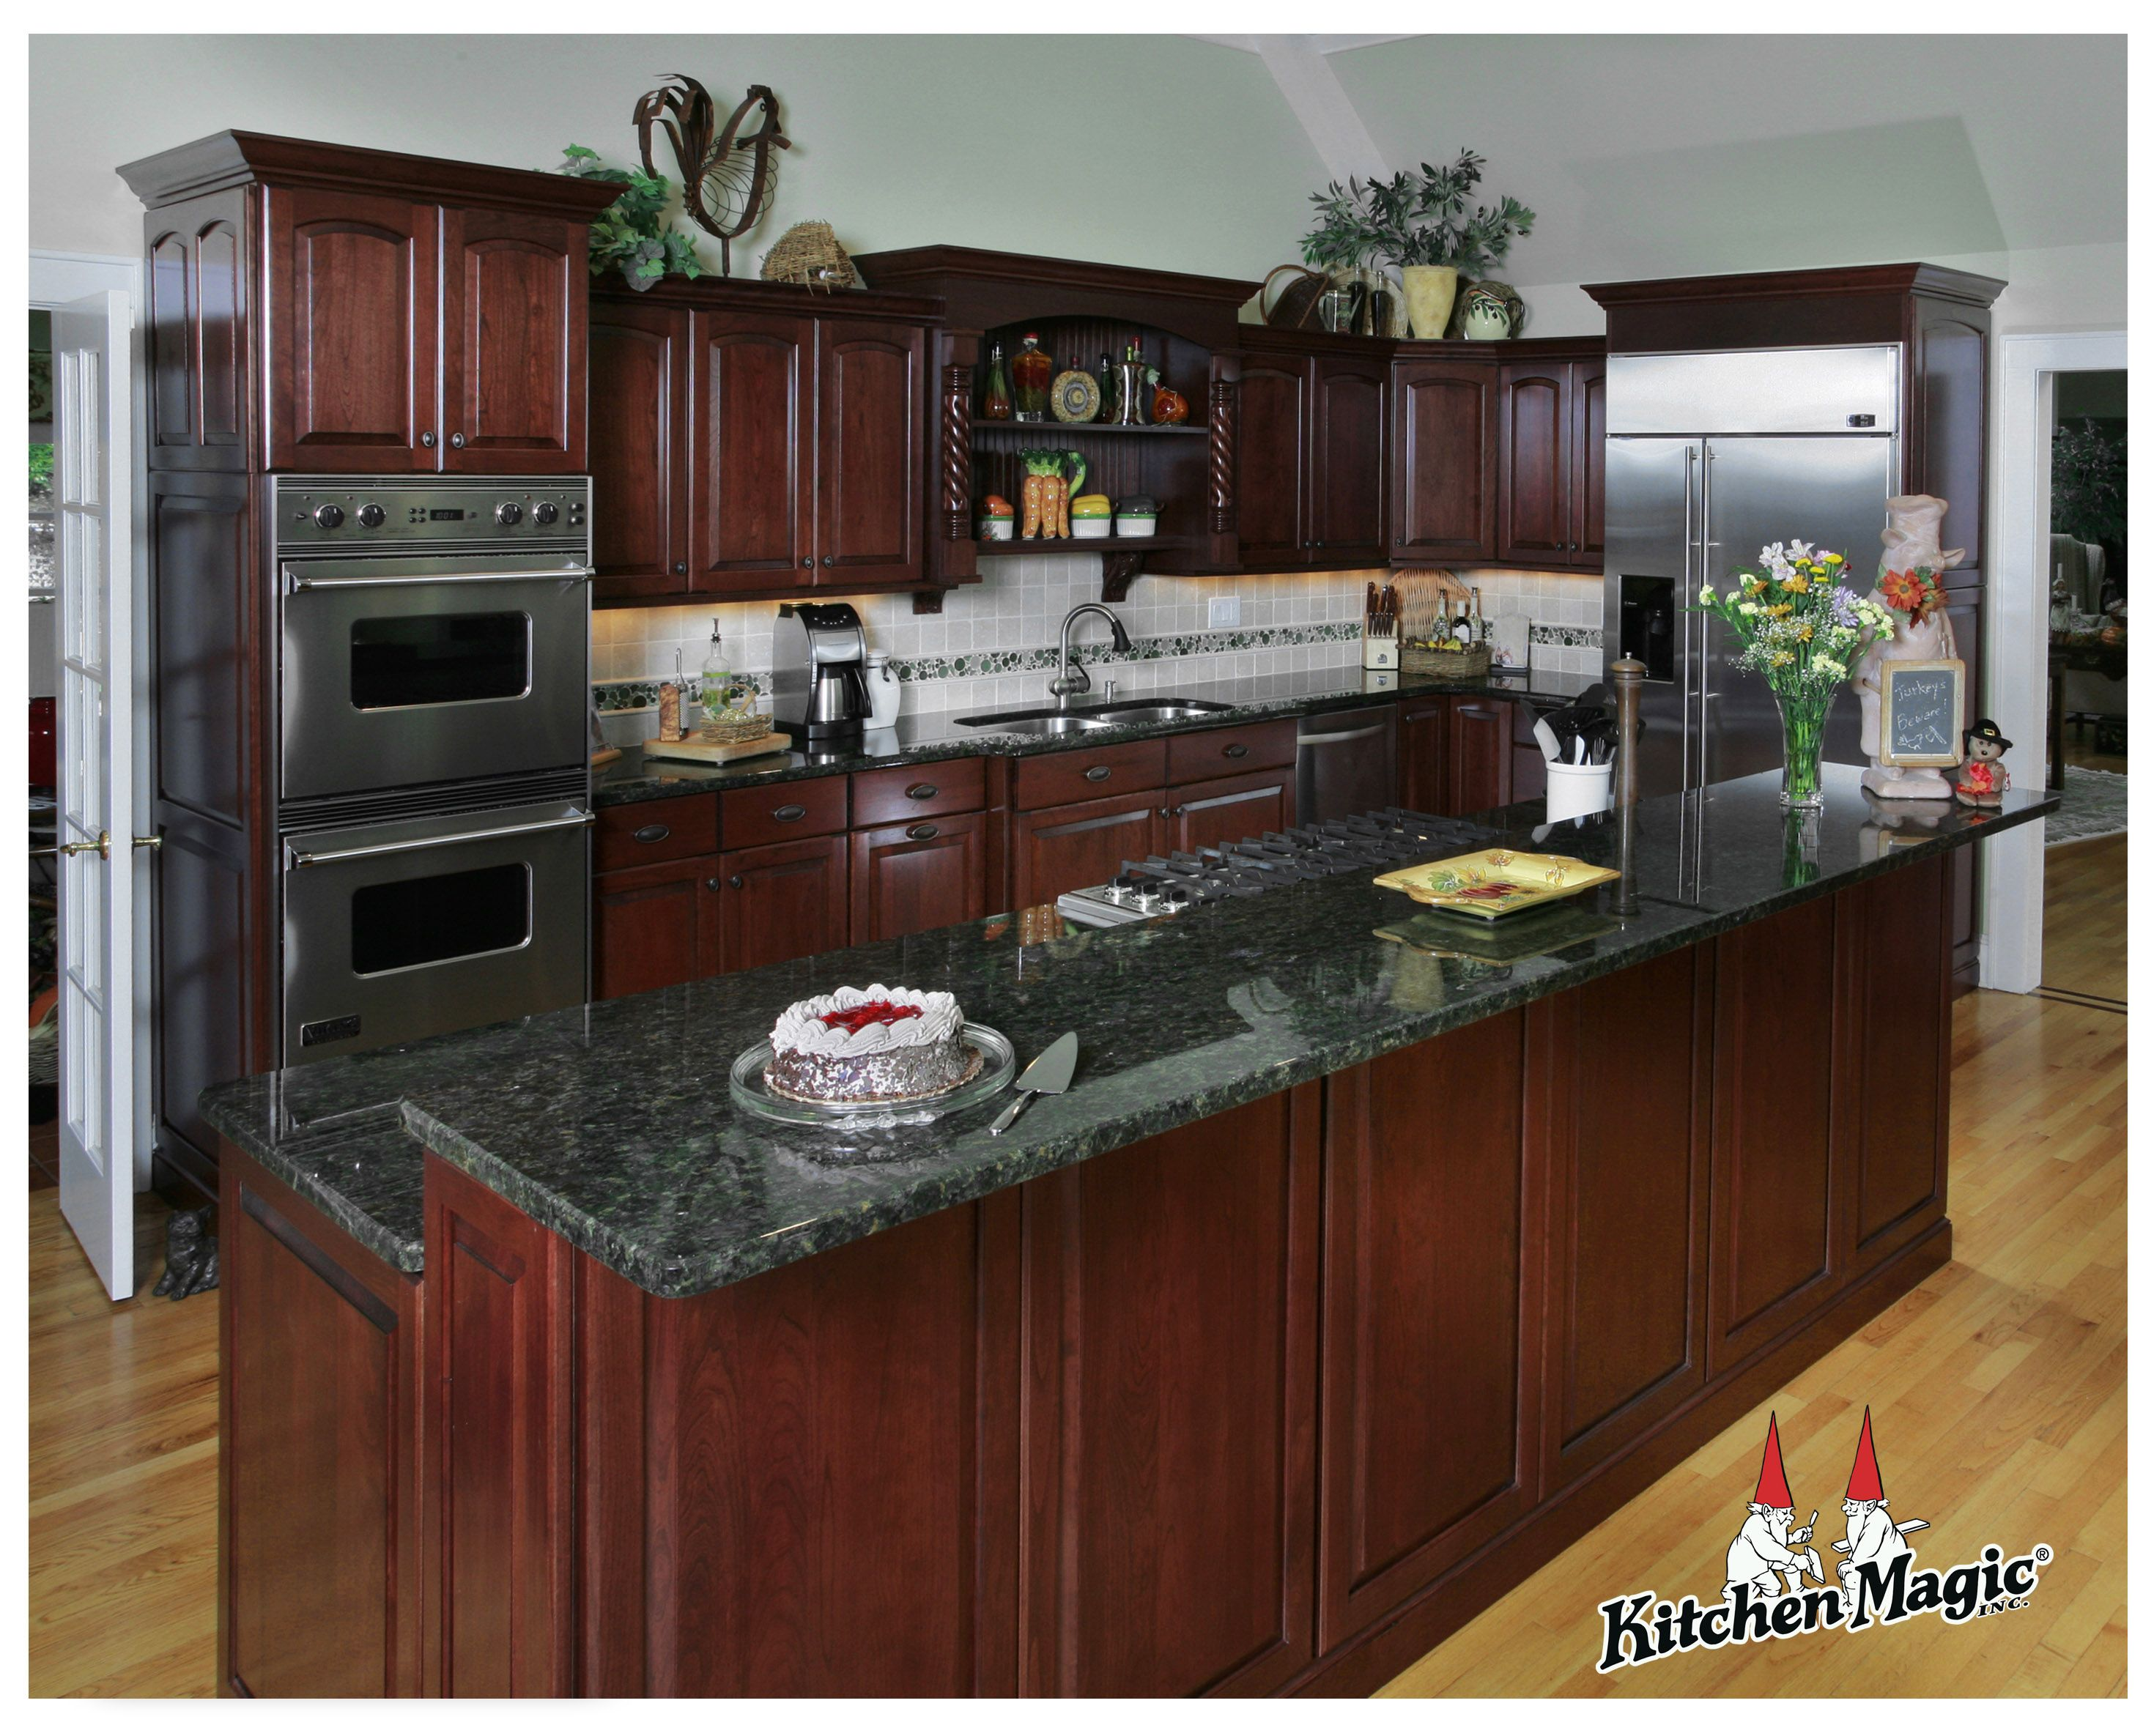 Cordovan Cherry Wood Cabinets.   Kitchen Magic, Inc.   This Is Part 51